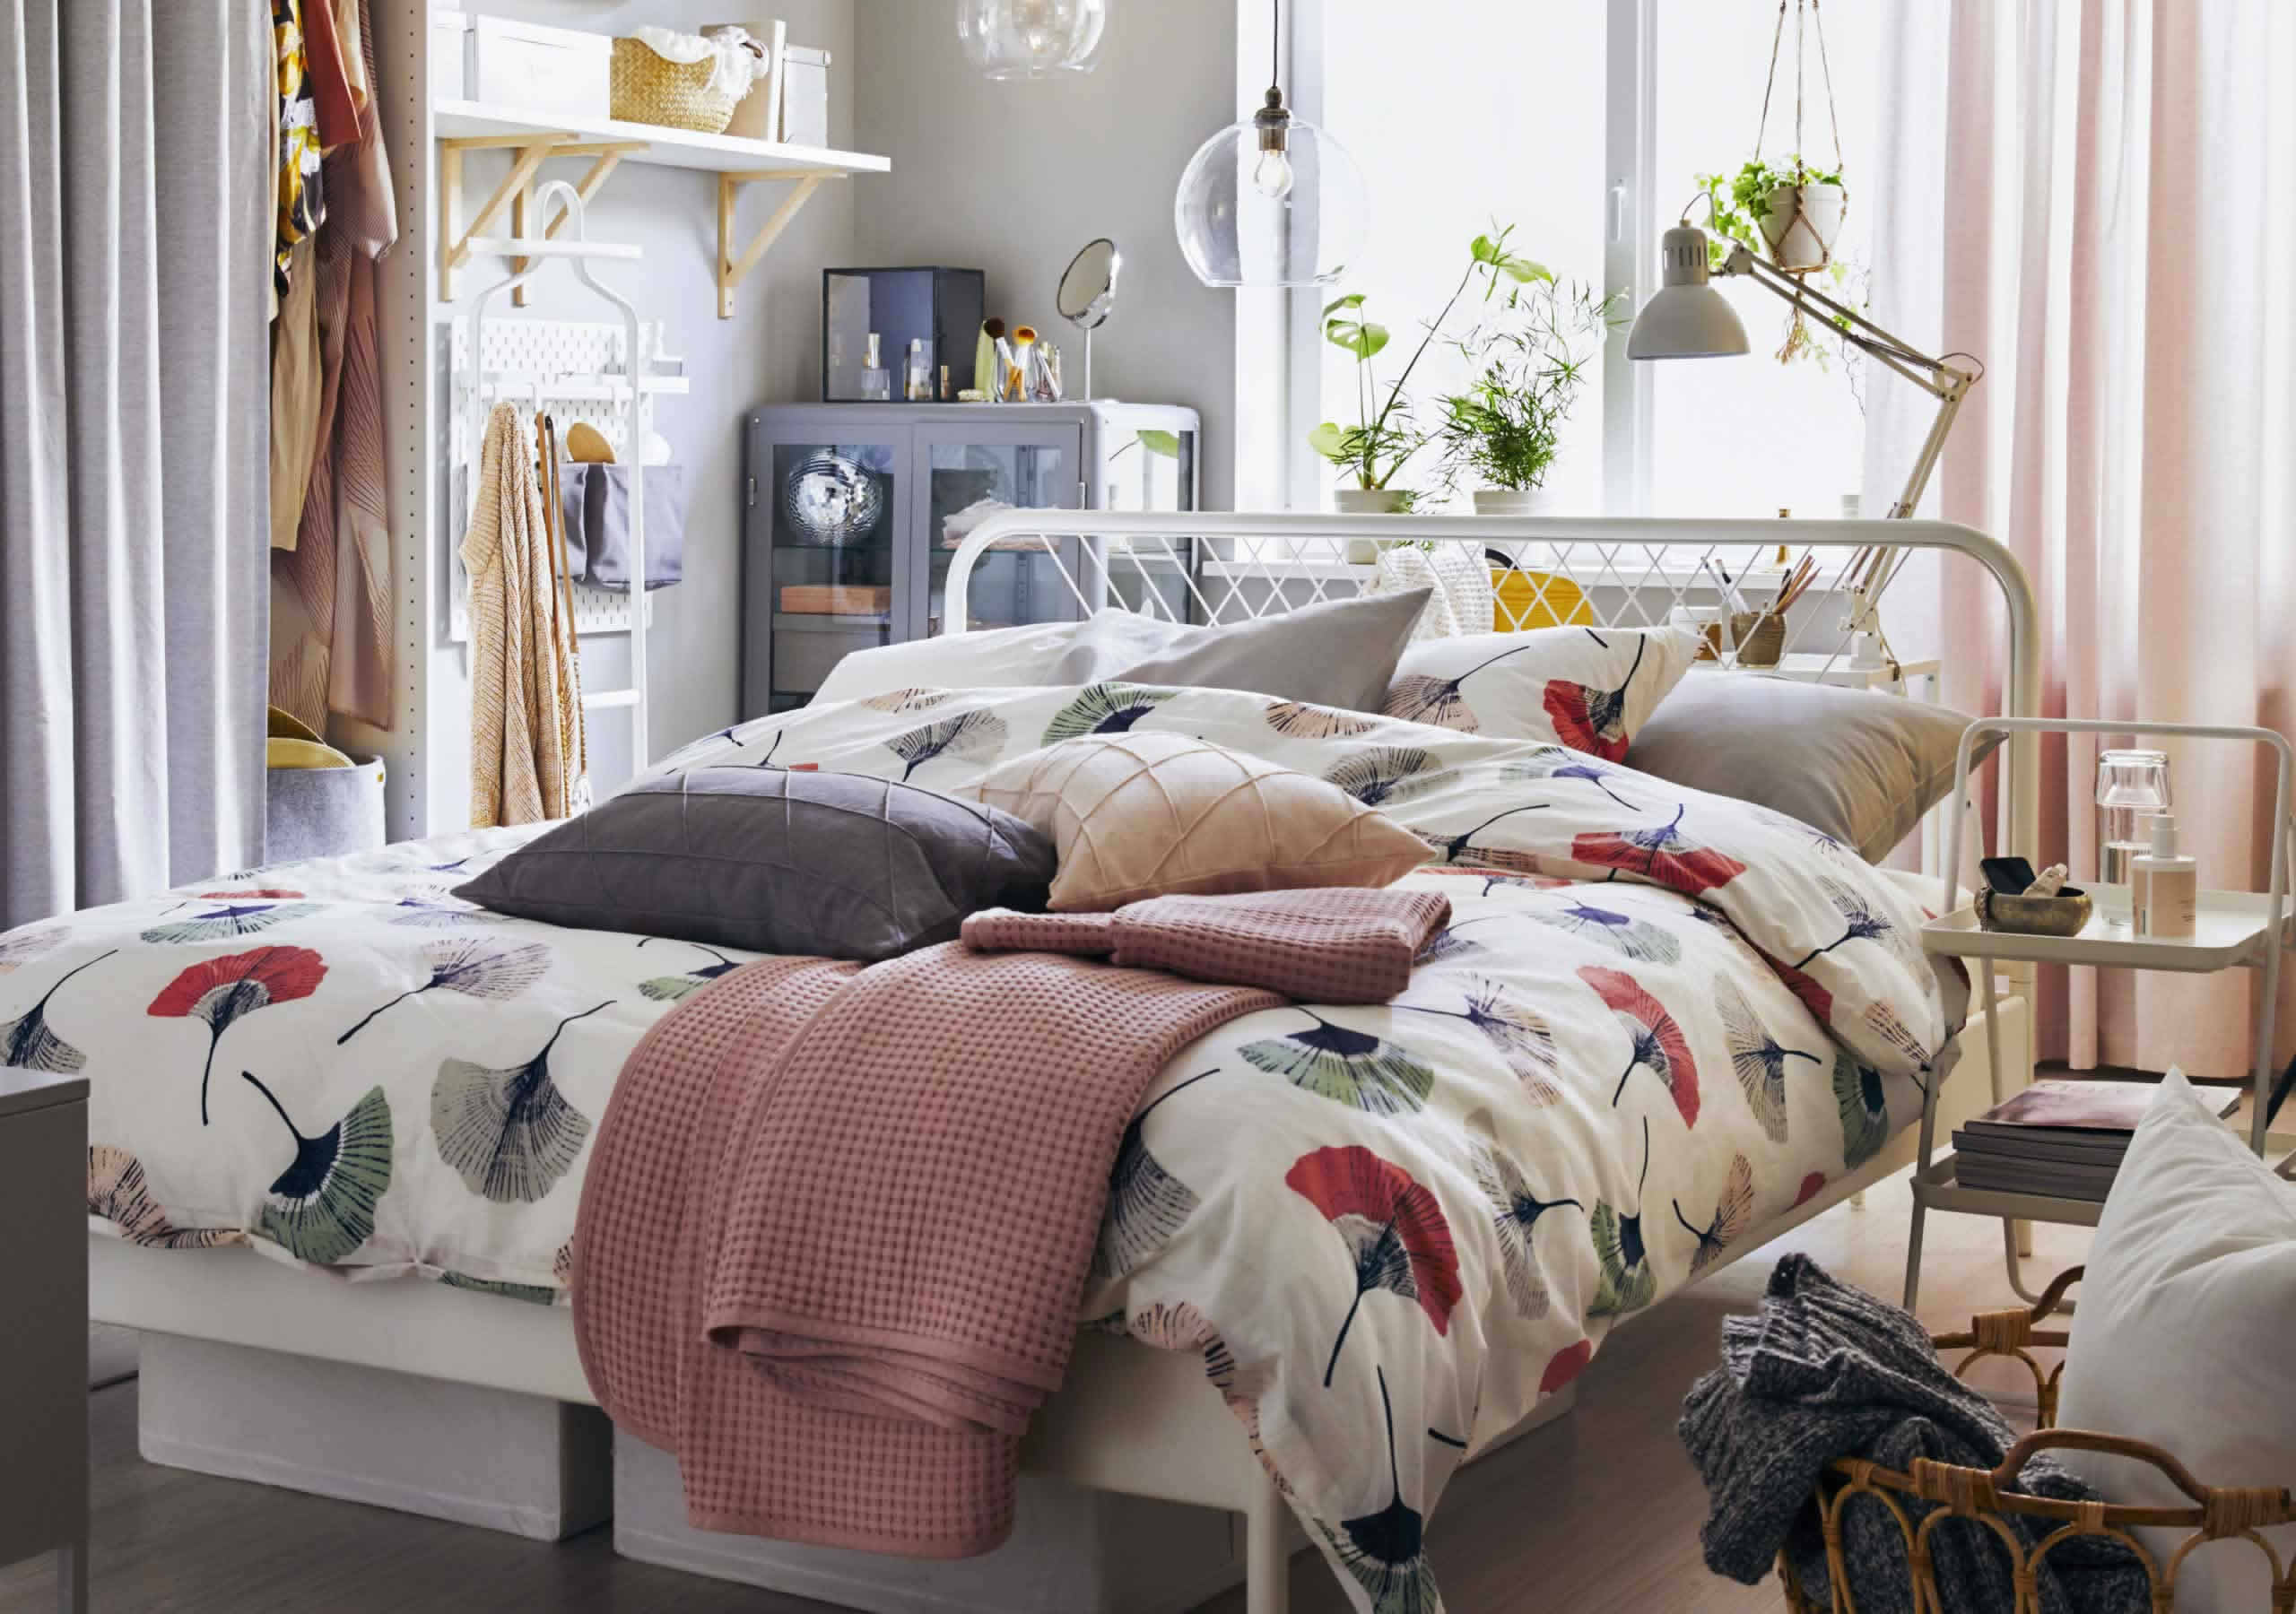 IKEA Ideas - A small space that works 24/7